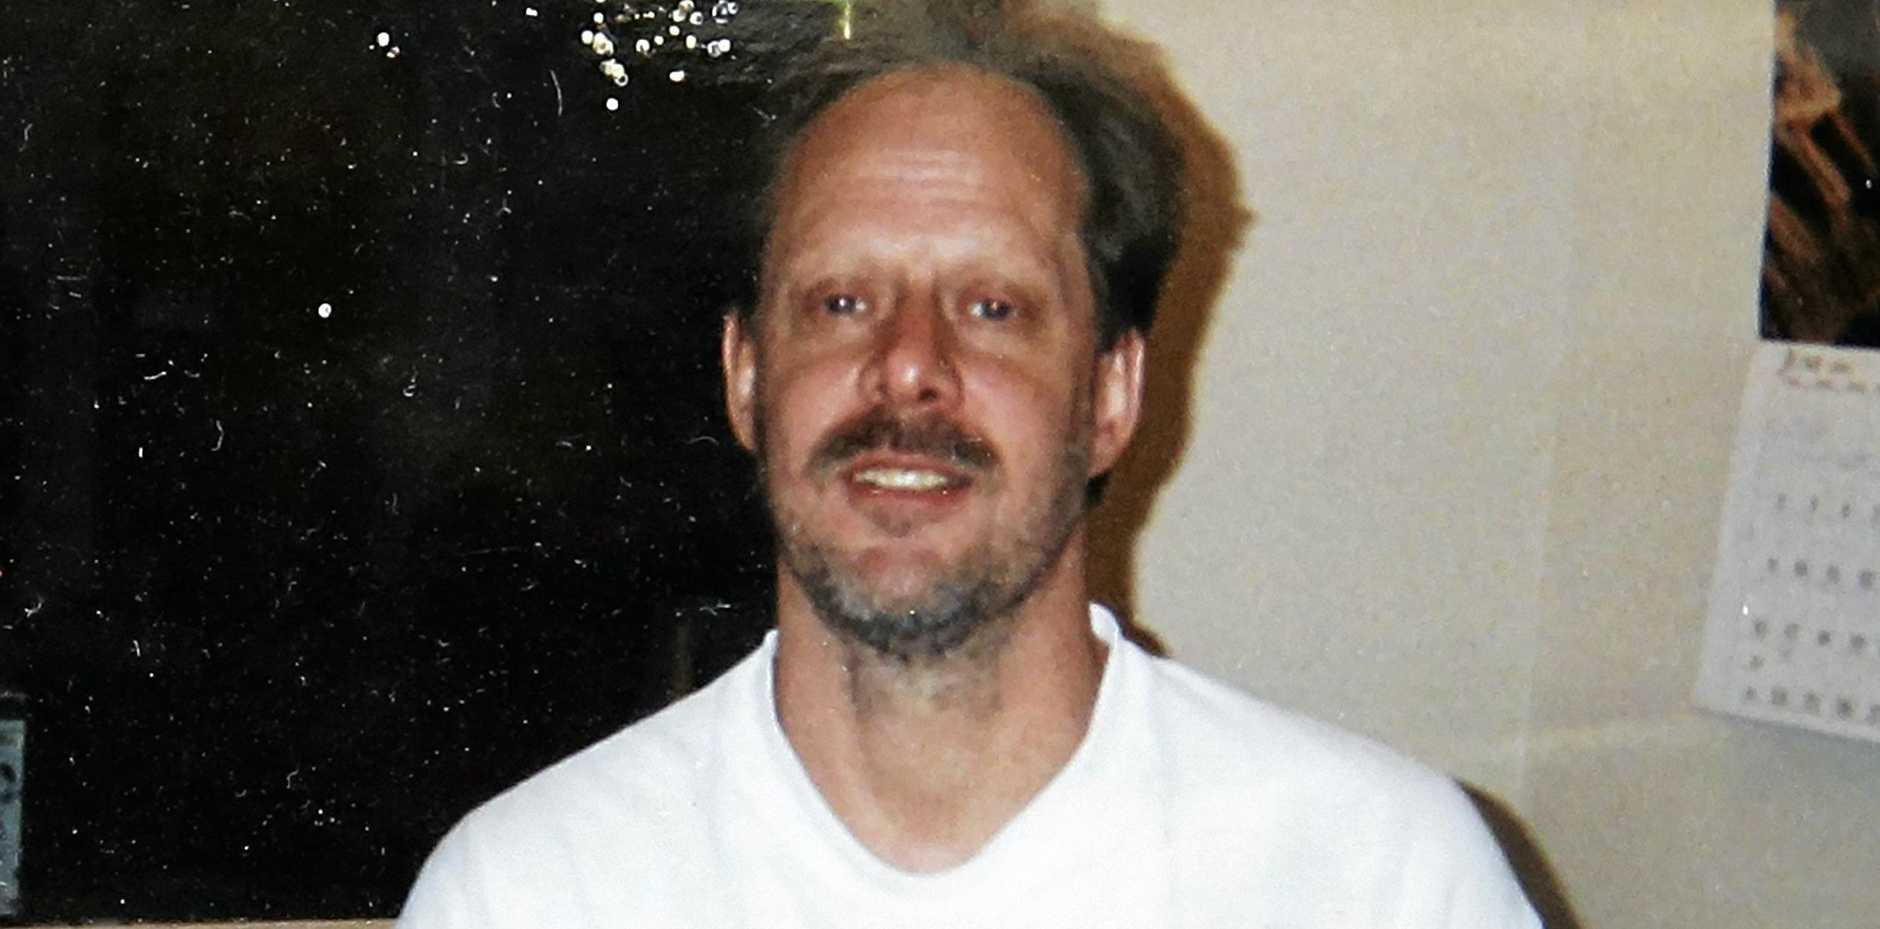 FILE - This undated photo provided by Eric Paddock shows his brother, Las Vegas gunman Stephen Paddock. On Sunday, Oct. 1, 2017, Stephen Paddock opened fire on the Route 91 Harvest Festival killing dozens and wounding hundreds. The question has been raised as critics suggested that the conversation around our nations tragedies is often framed in divisive, racial code words. If whites are blamed, they say, it is as individuals; for minorities, it is suggested that their crimes are part of a larger narrative.  (Courtesy of Eric Paddock via AP)